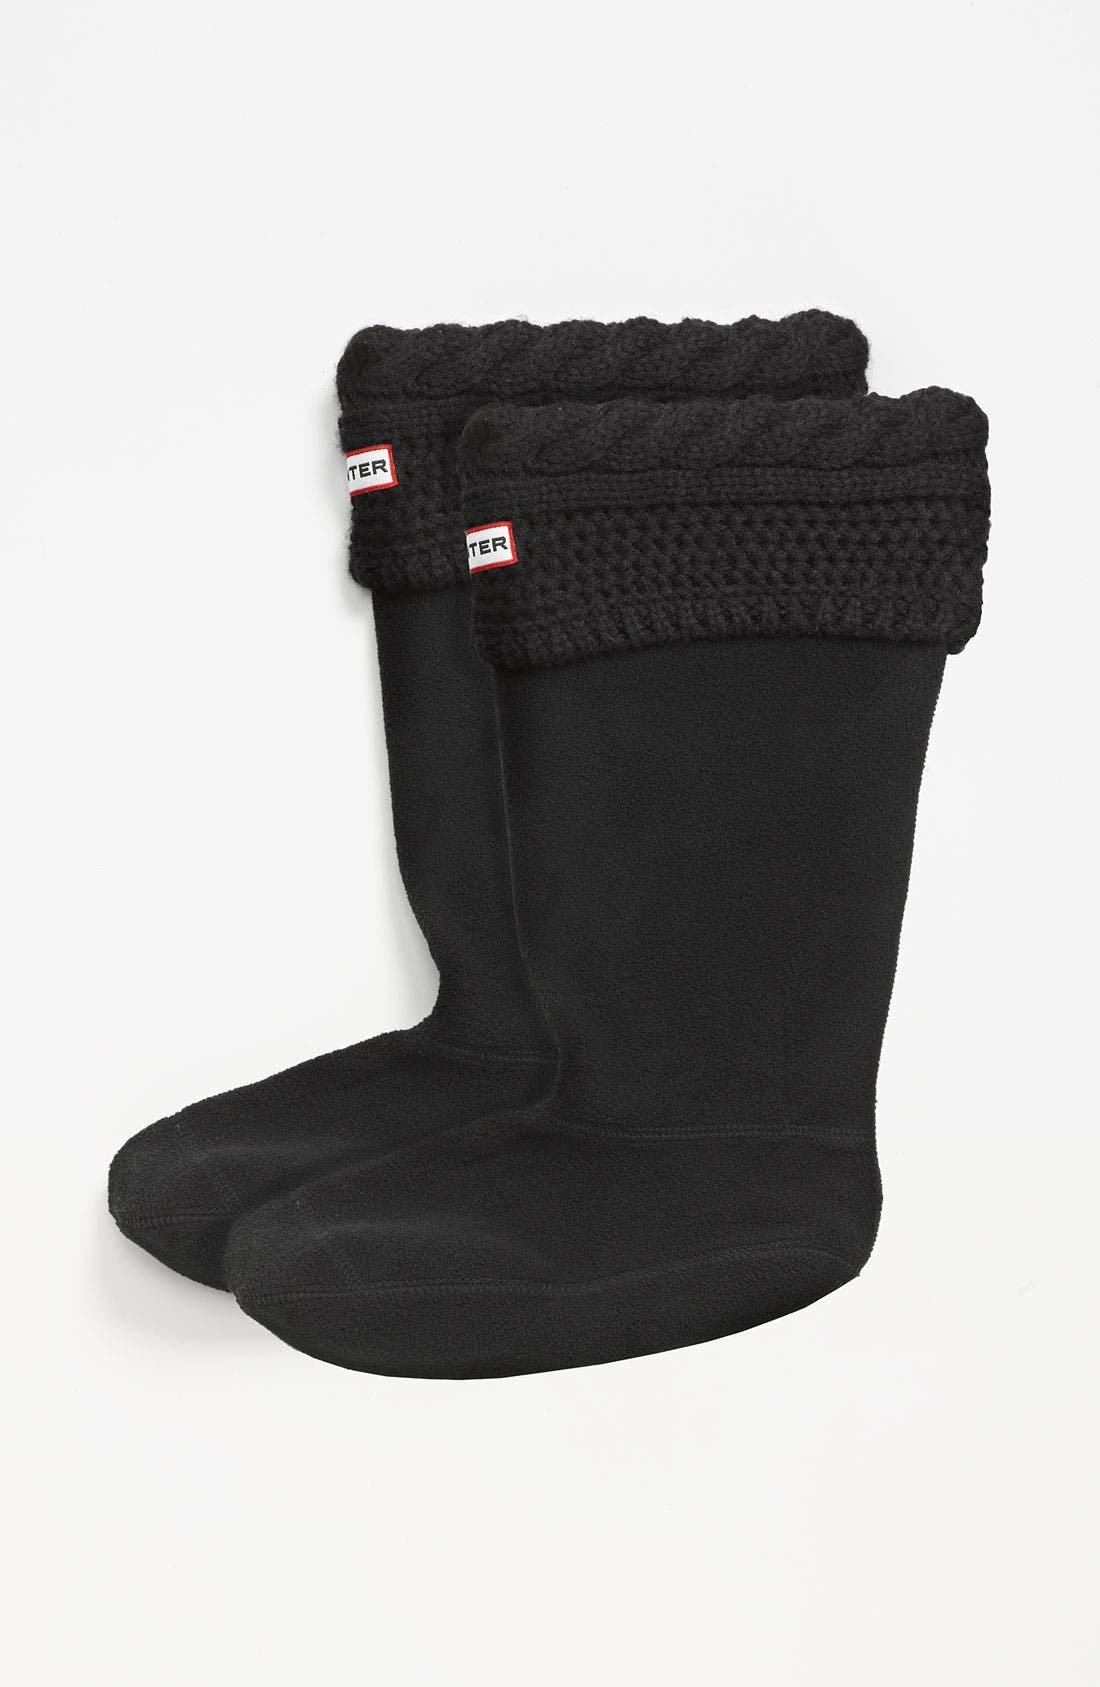 'Moss Cable' Tall Cuff Welly Socks,                         Main,                         color, Black